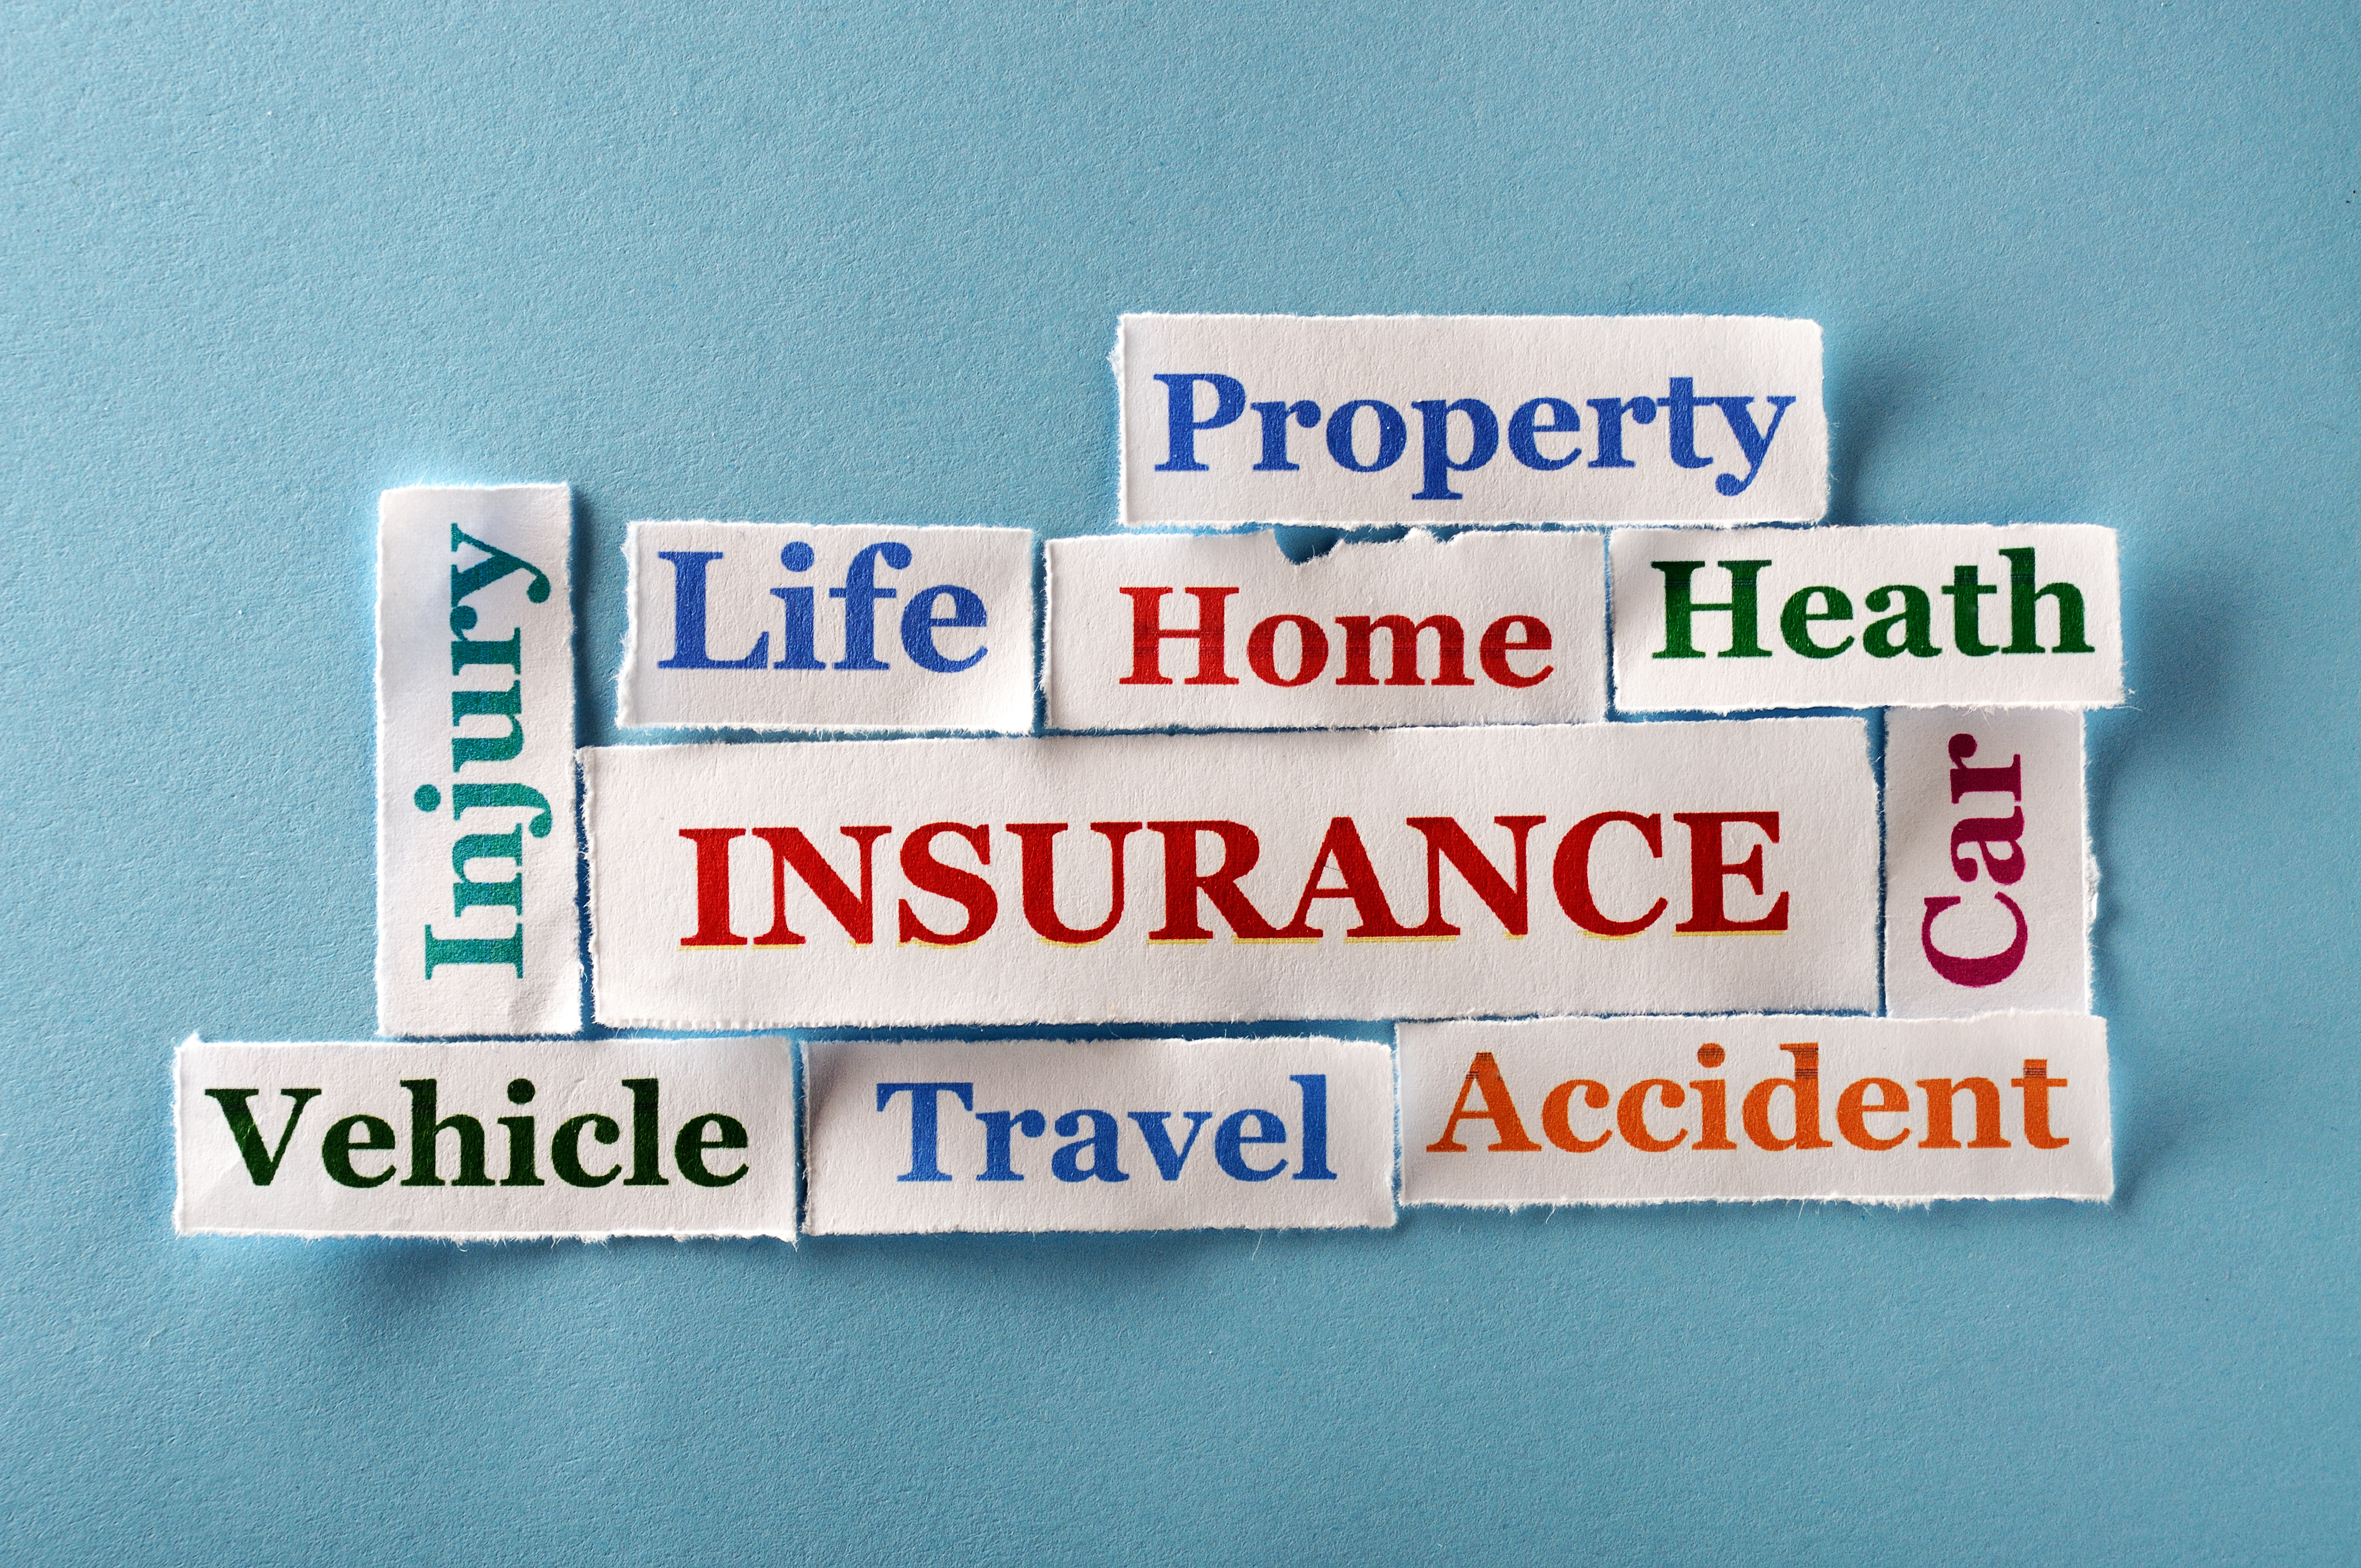 7 Building Aspects That Impact Your Home Insurance Rates